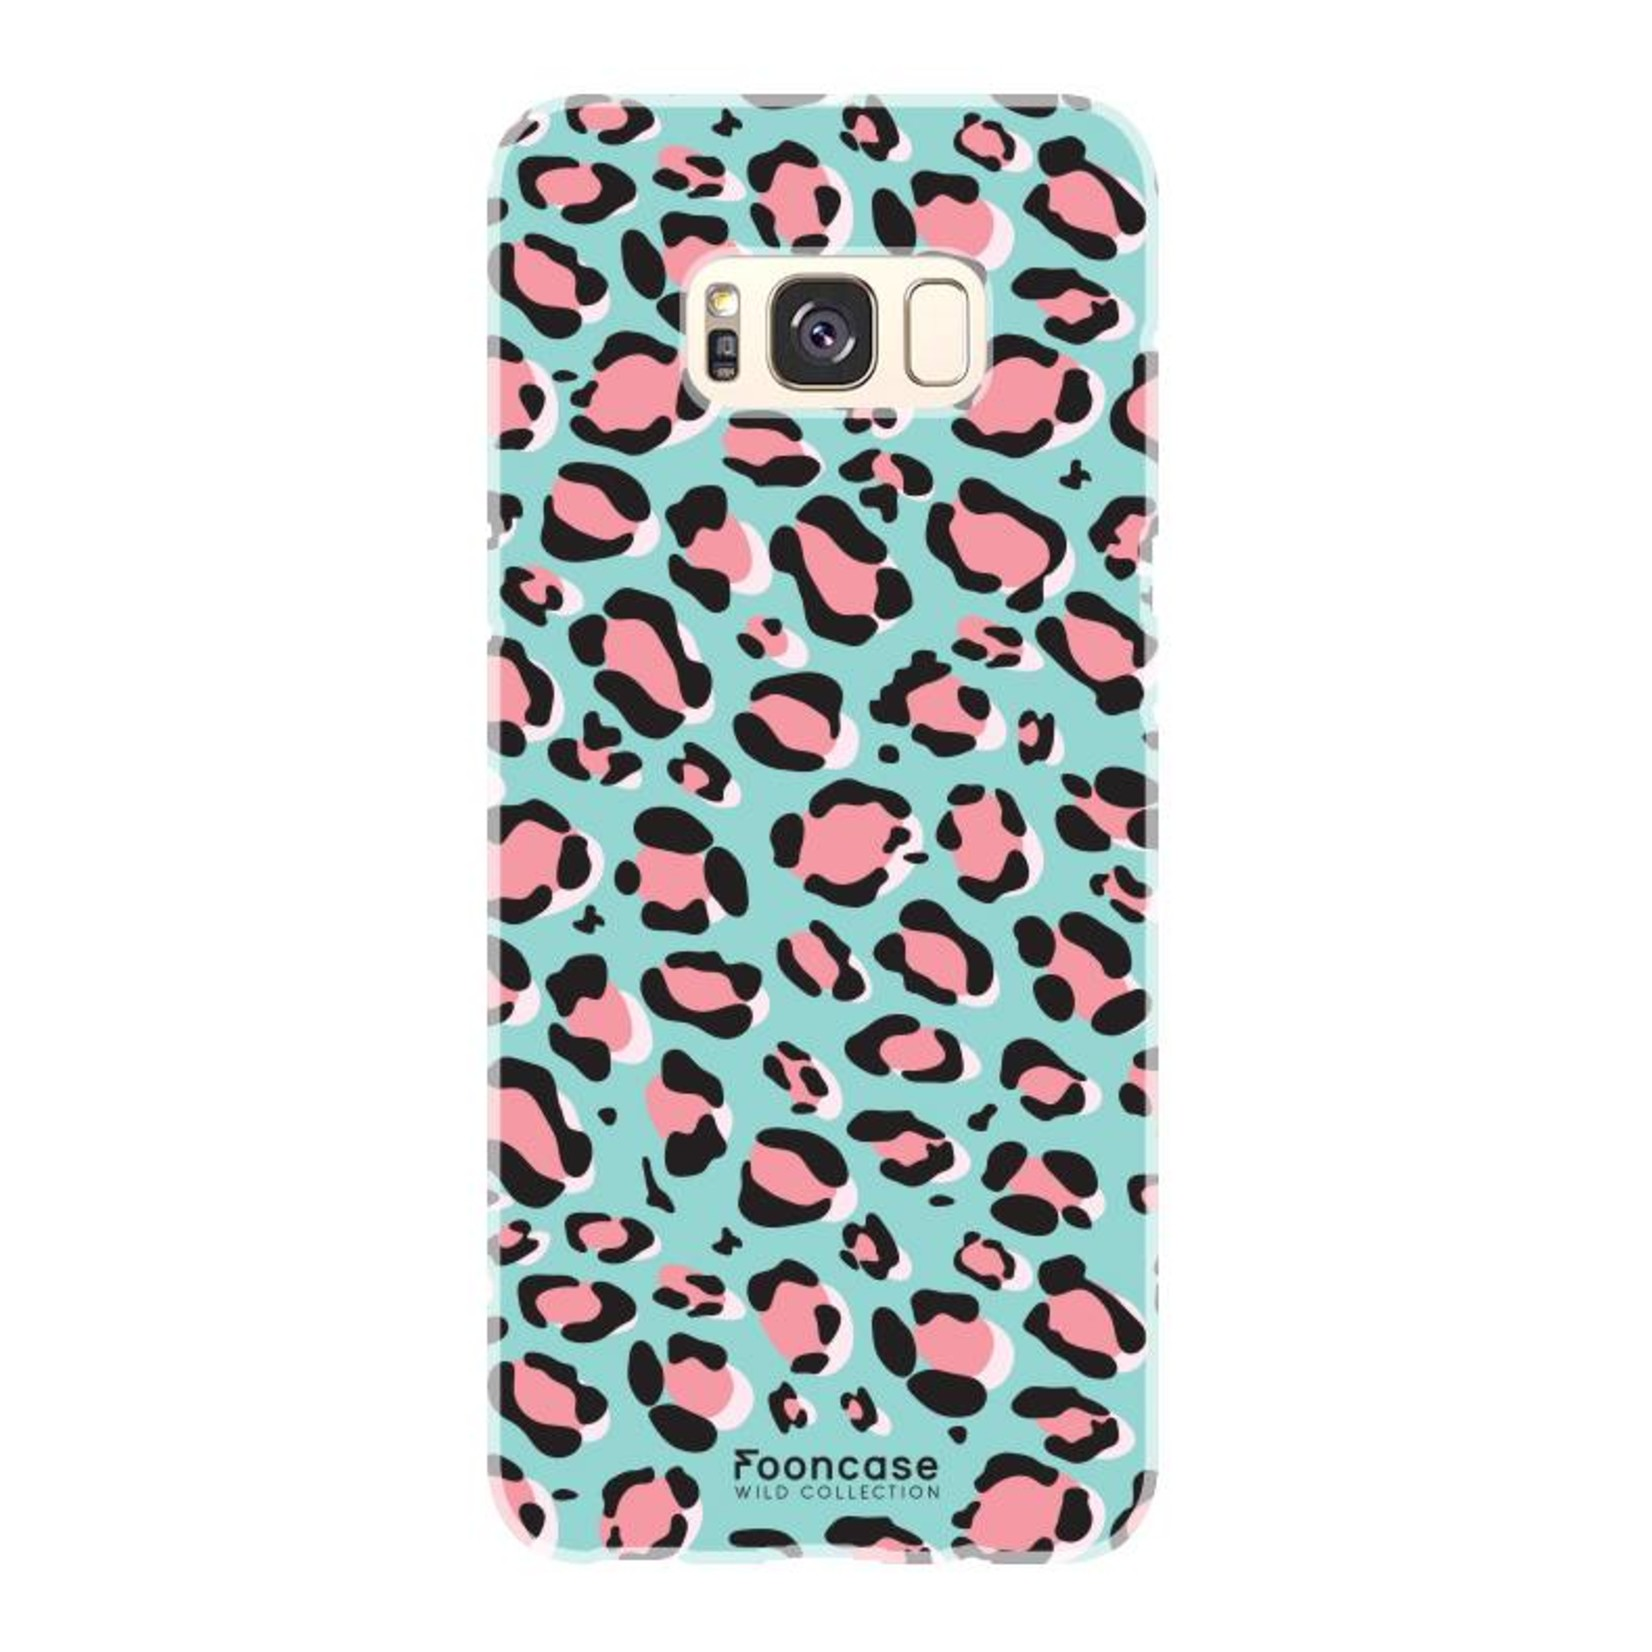 FOONCASE Samsung Galaxy S8 Plus hoesje TPU Soft Case - Back Cover - WILD COLLECTION / Luipaard / Leopard print / Blauw